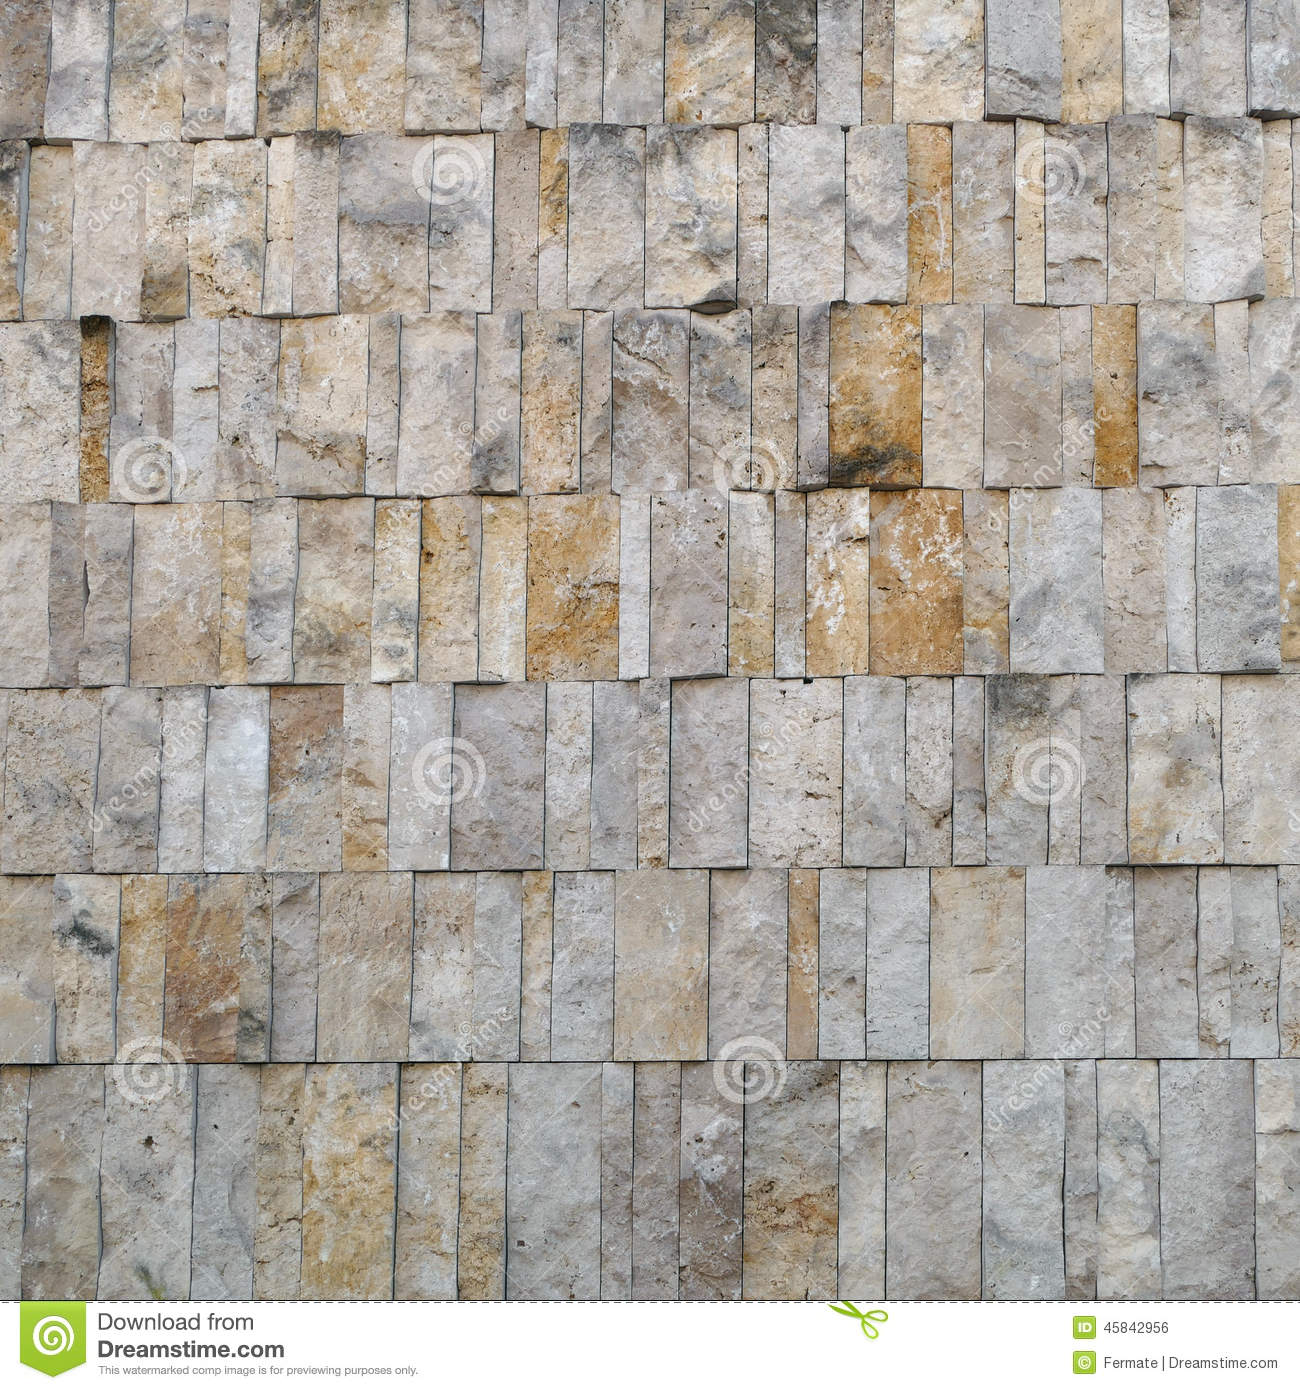 Facade cladding or wall finishing of pale ocher stone for Stone building facade